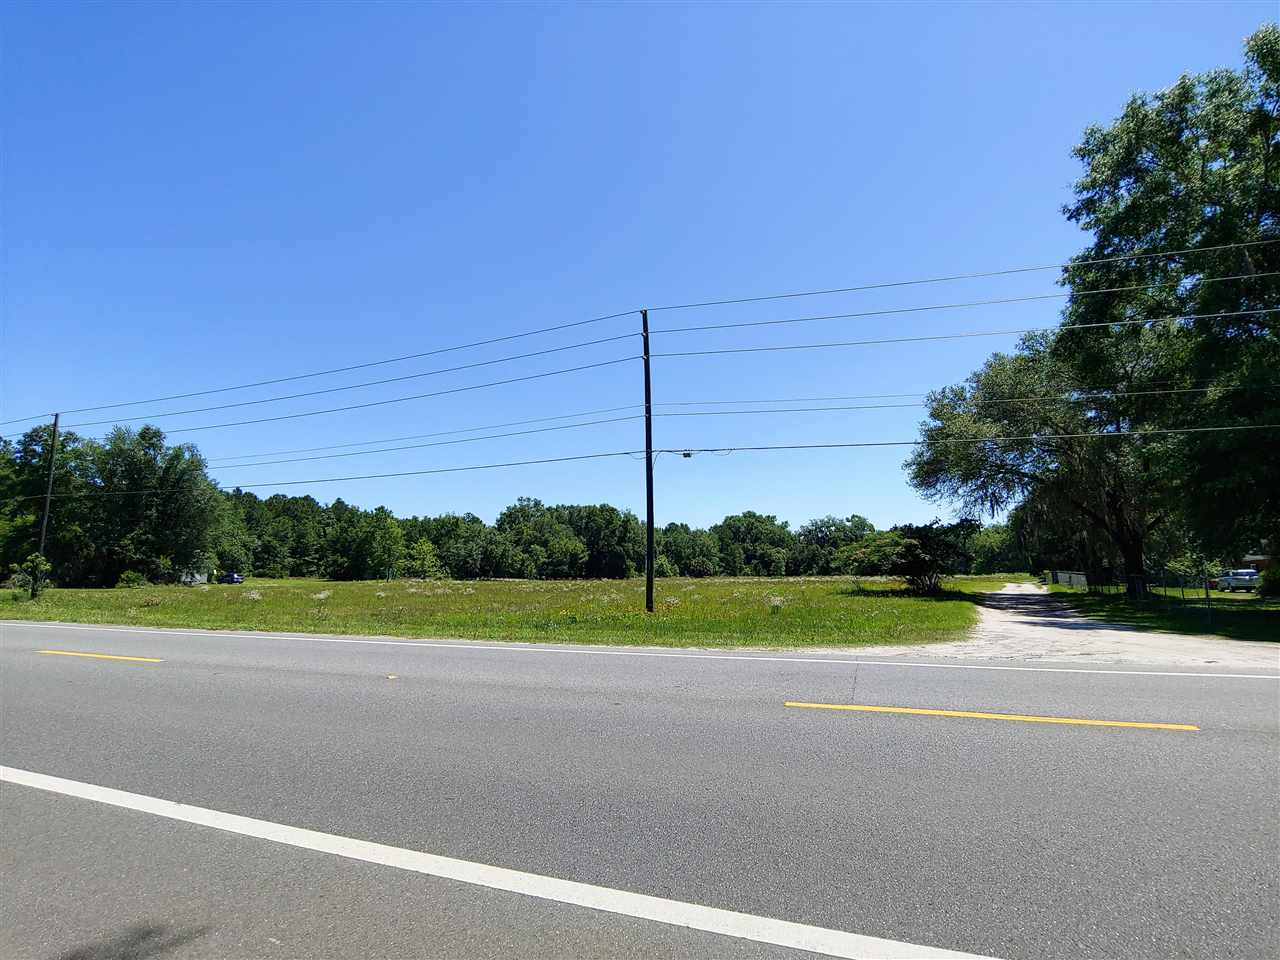 4.29 Acres - 340' N US Hwy 221 Frontage. 631' Deep. 30' Easement on Southern Boundary. All Clear with established grasses.  This property was the Graves Drive-In Theatre and is located next to the Graves Drive-In Restaurant.  Property is Zoned Mixed Use - Urban Development.   2020 Property Taxes are $343.21 - 14.9892 Total Millage.  Please contact agent before walking or driving on the property